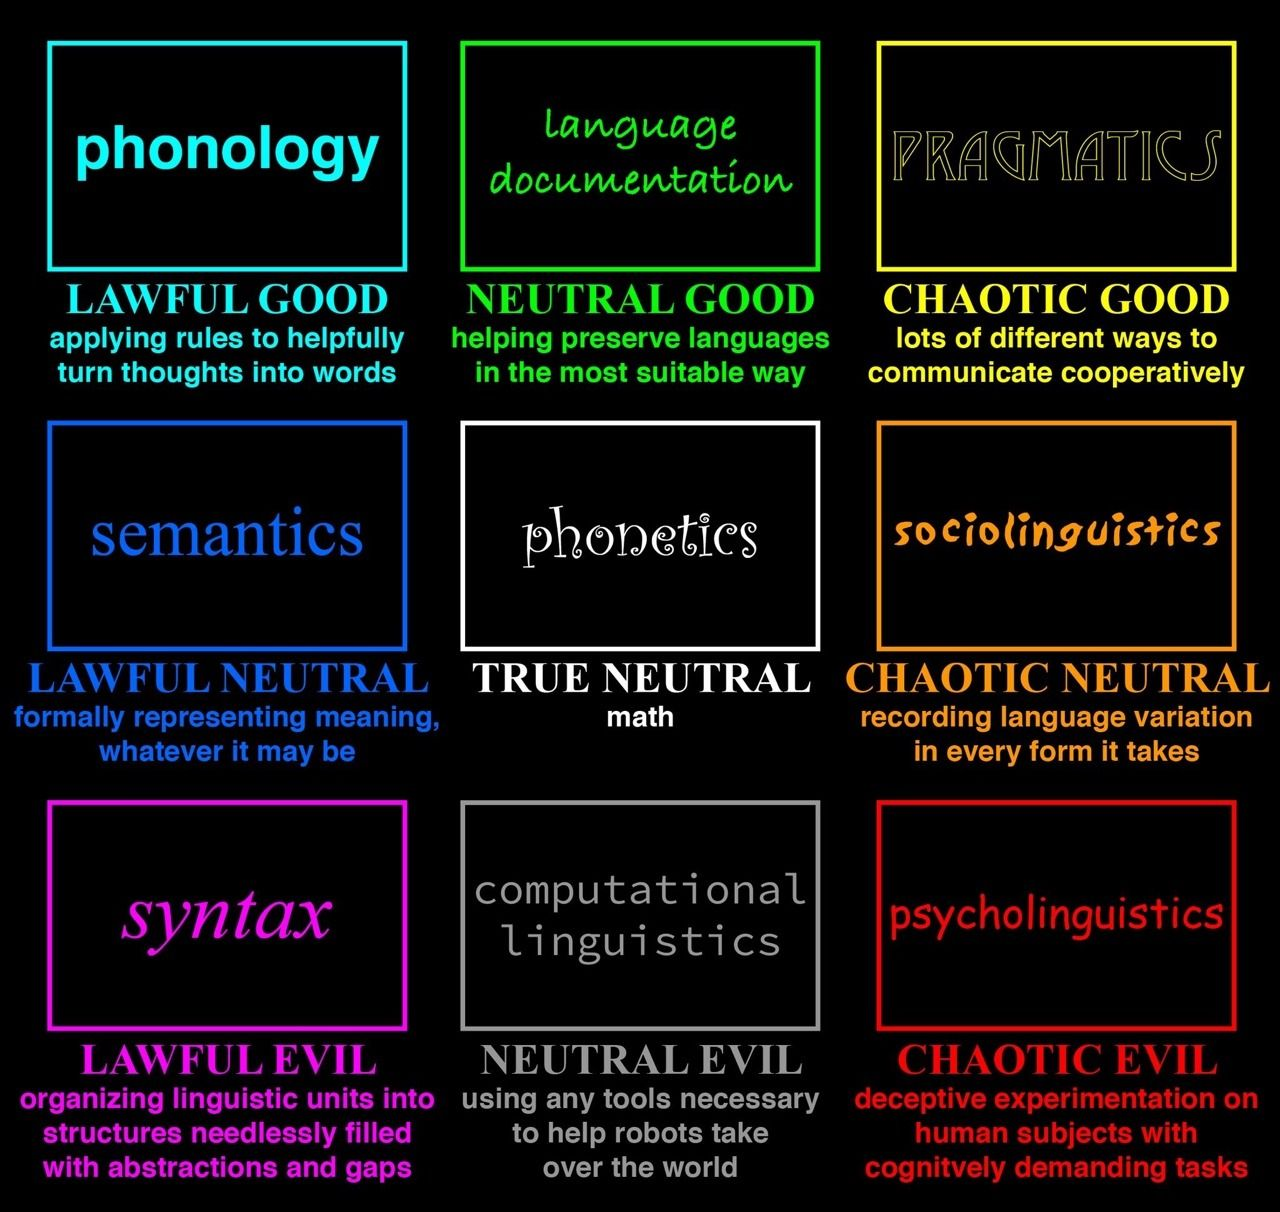 Pin By Cathryn Parker On Engl 1200 Intro To Linguistics Nlp Lawful Good Chart Linguistics